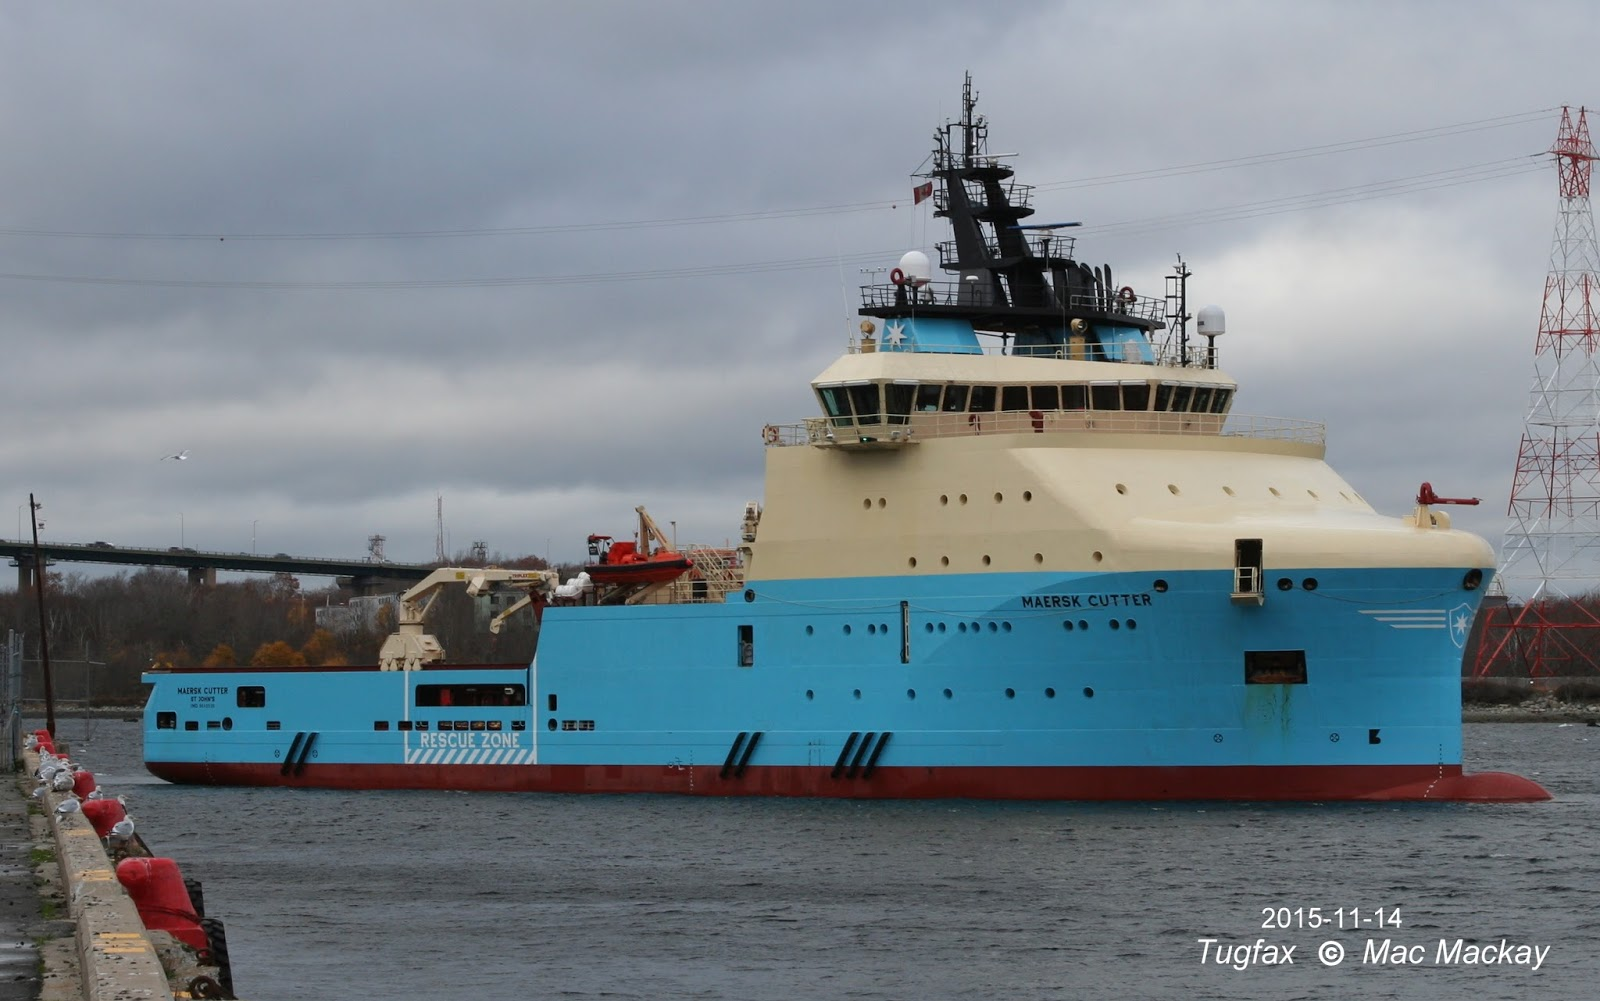 Tugfax: Maersk Cutter - finds work